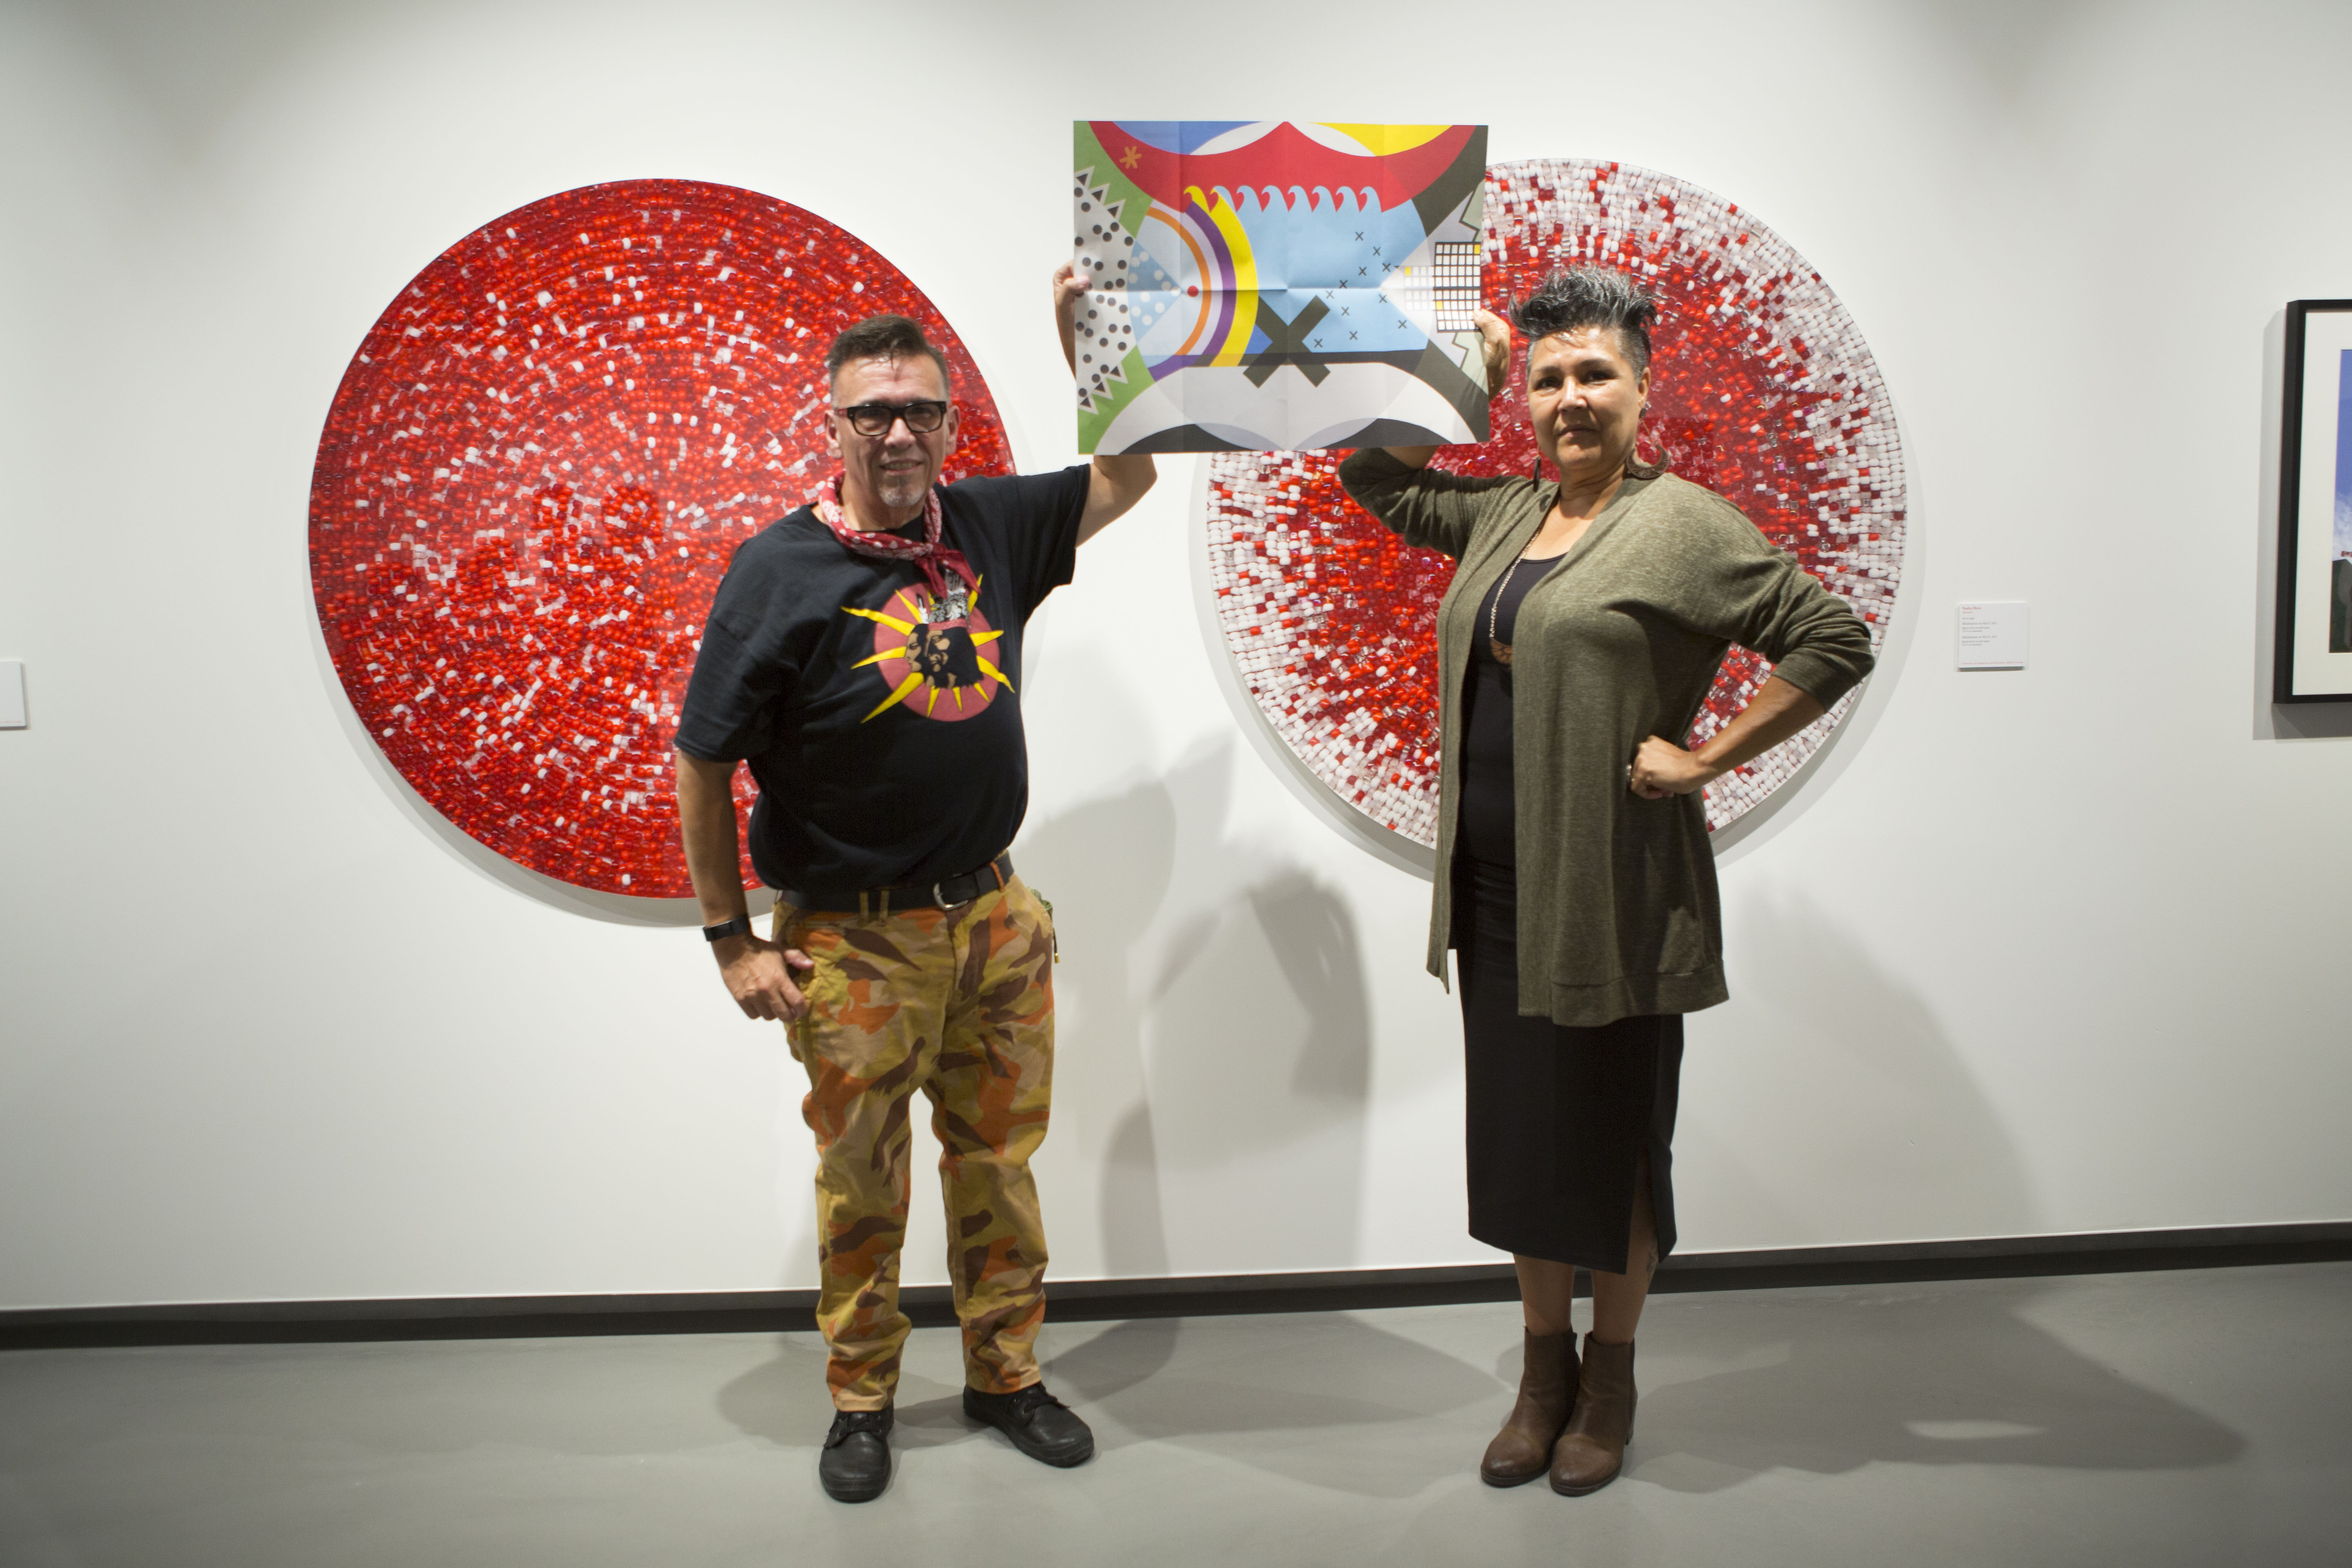 Ryan Rice with Janet Rogers, holding flag designed for exhibition